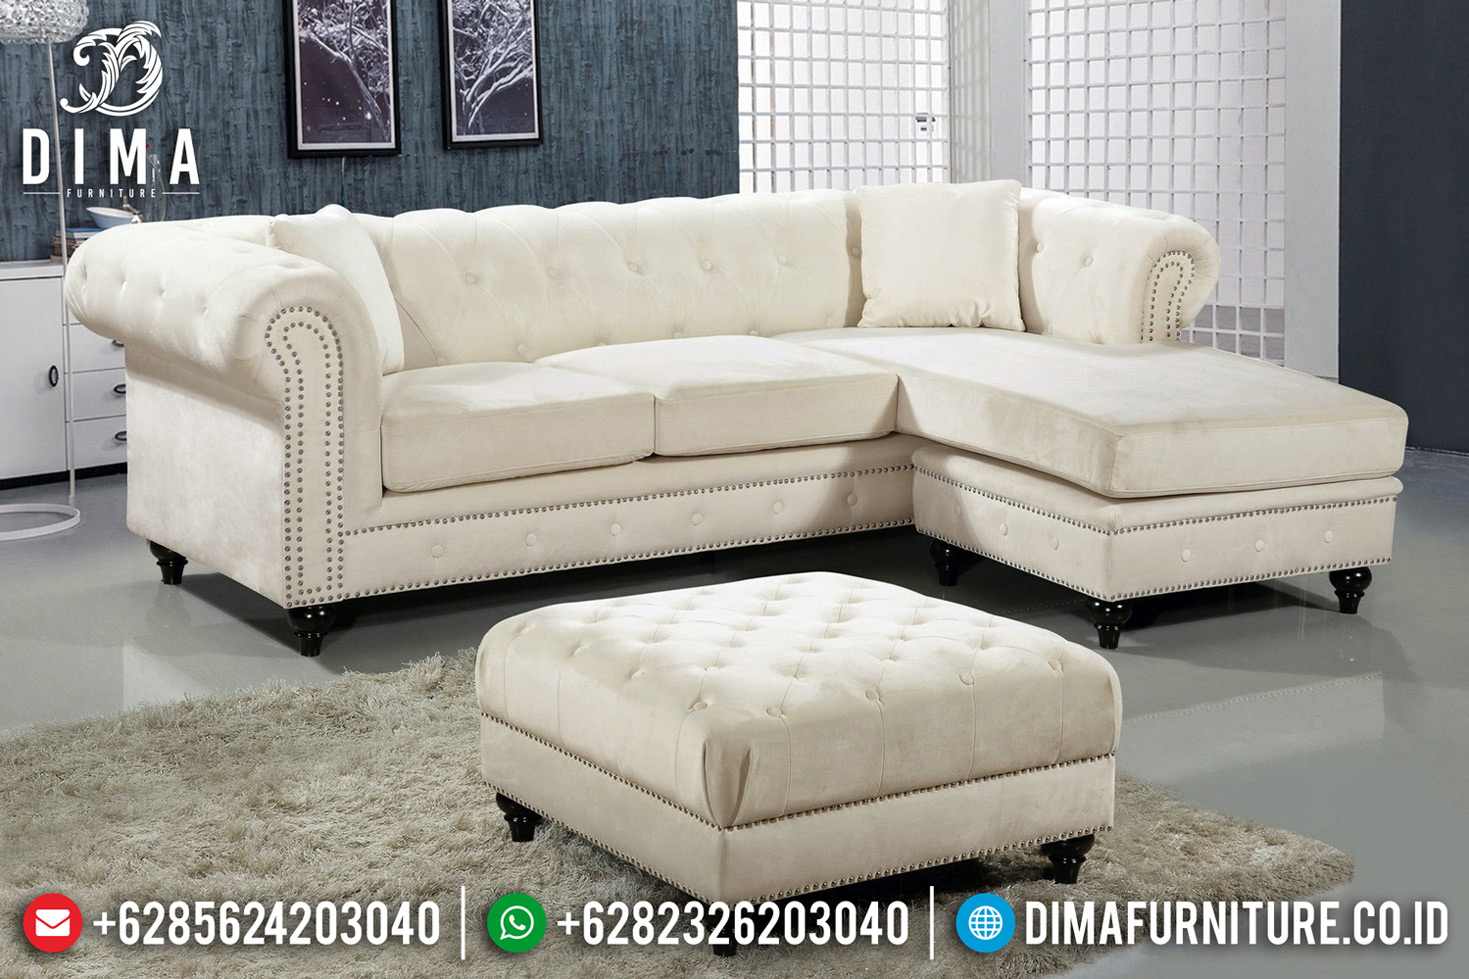 New Sofa Tamu Minimalis Jepara Natural Jati Grade A Luxury Wood TTJ-0726